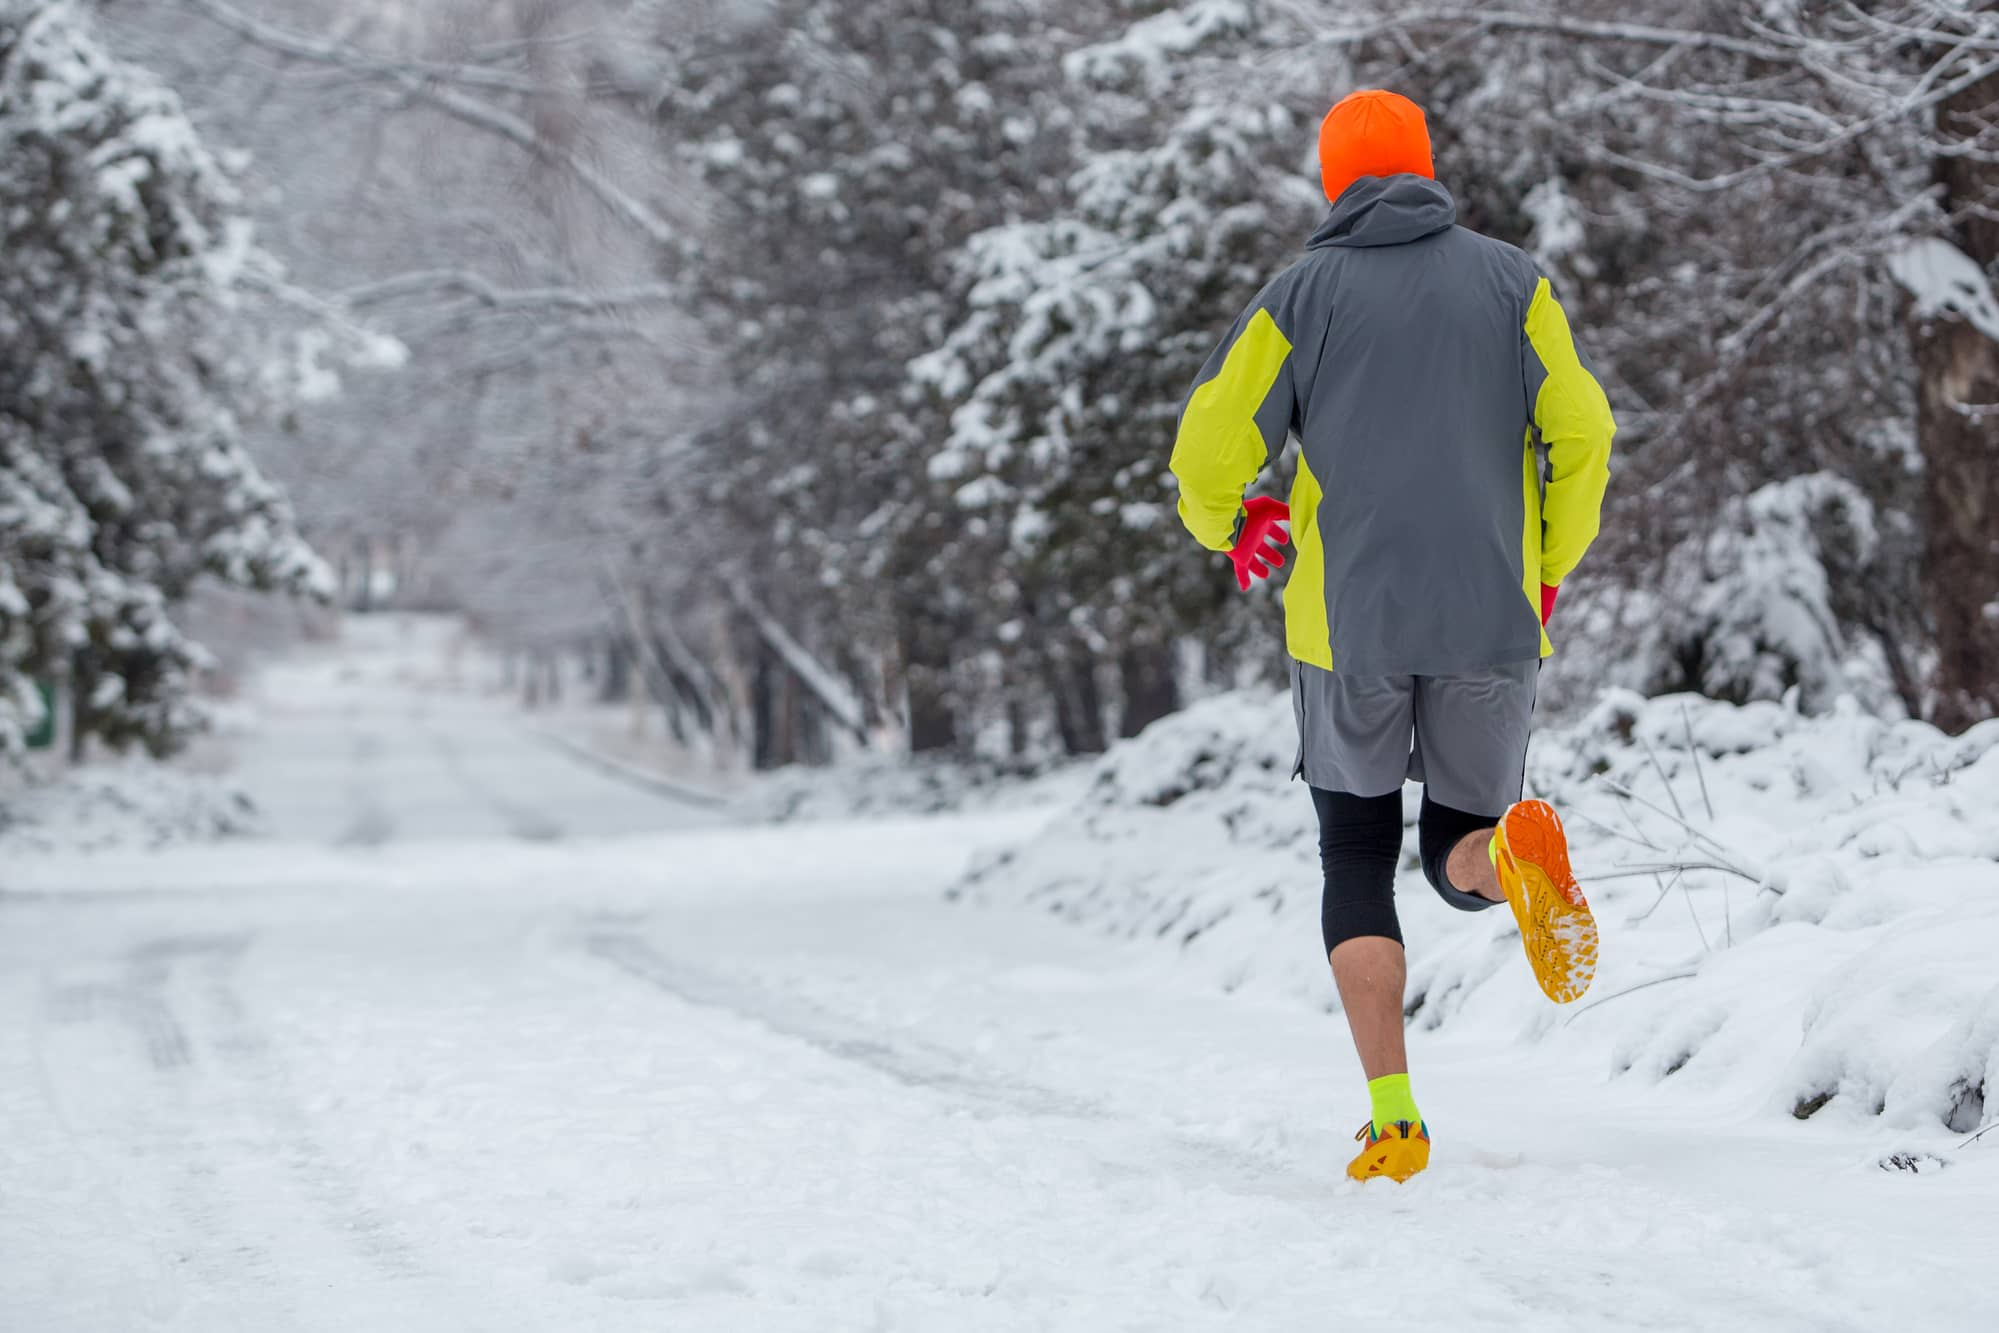 local park ideal for new runners